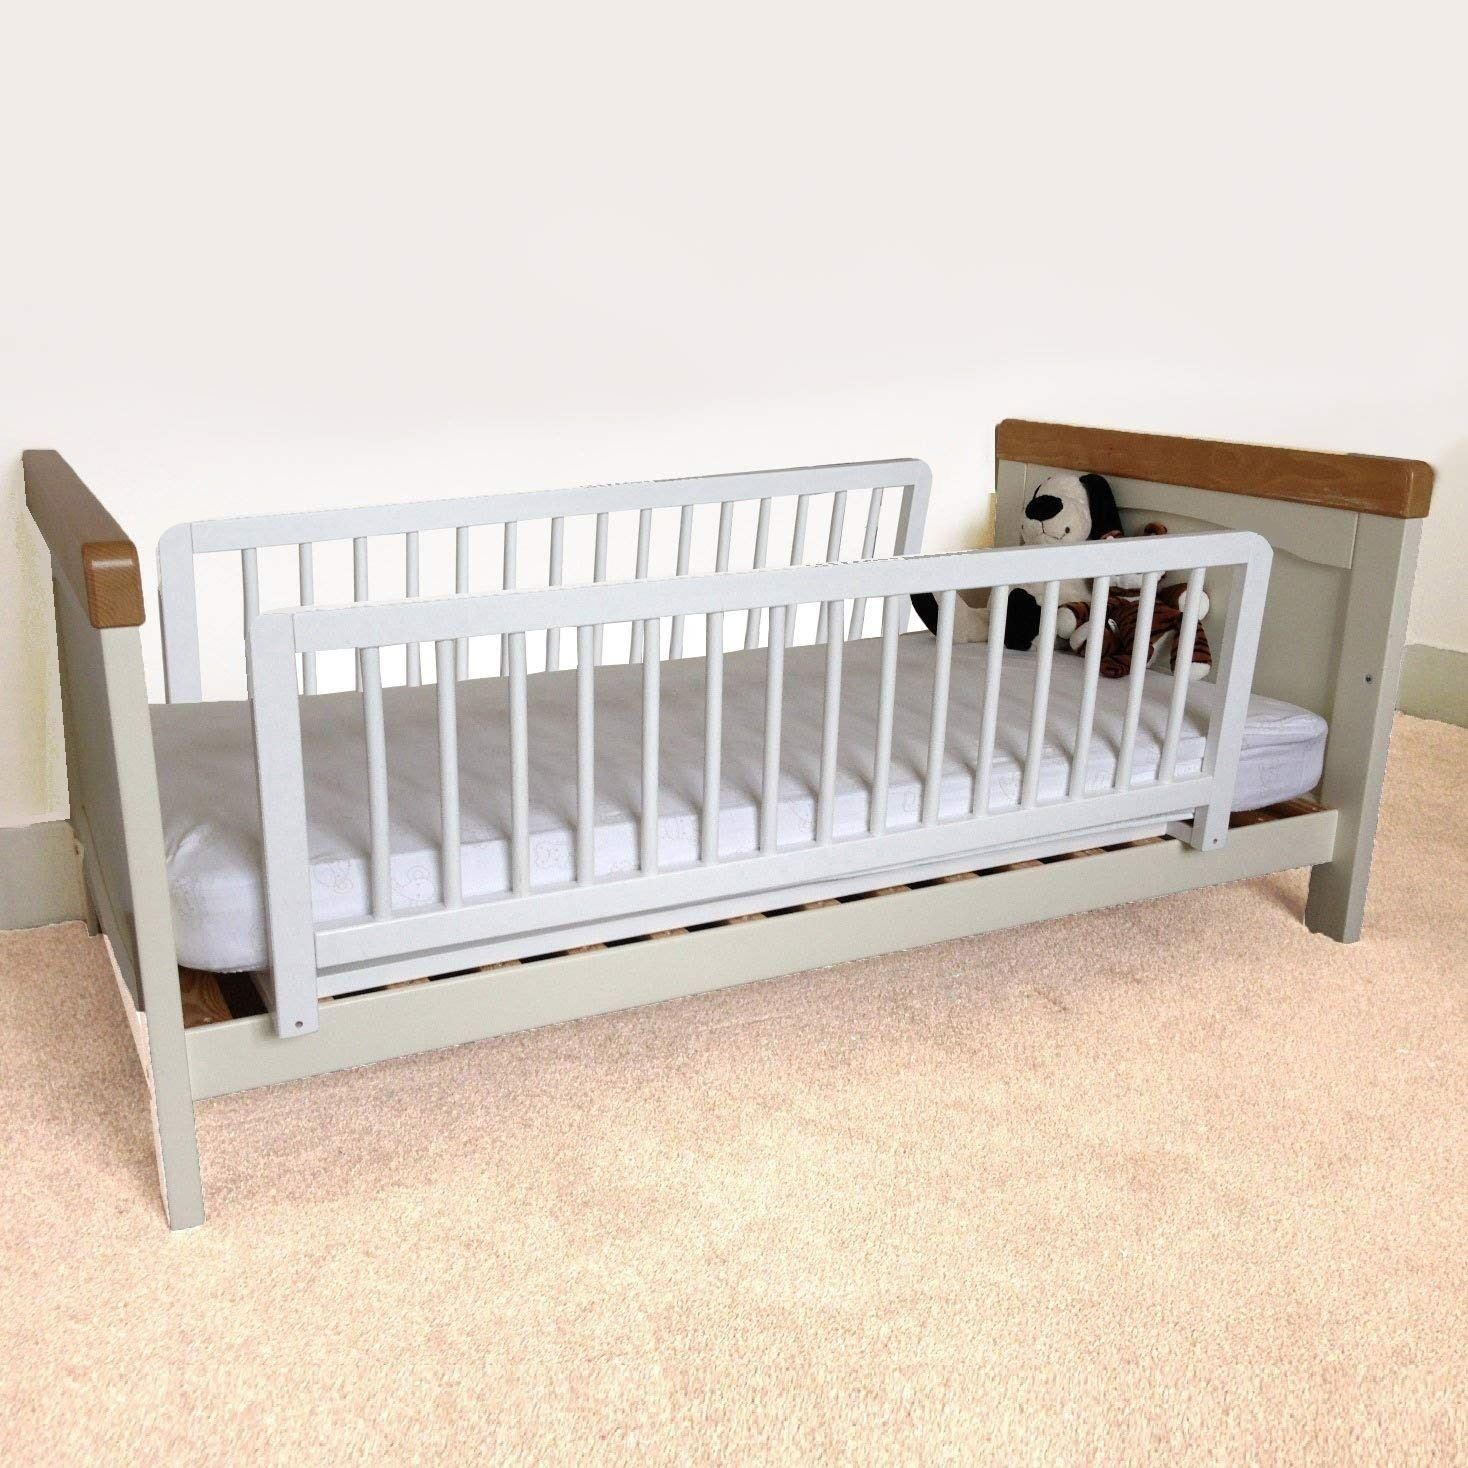 Safetots Double Sided Kids Wooden Bed Rail Toddler Bed Guard White Wood 5060338468168 Ebay